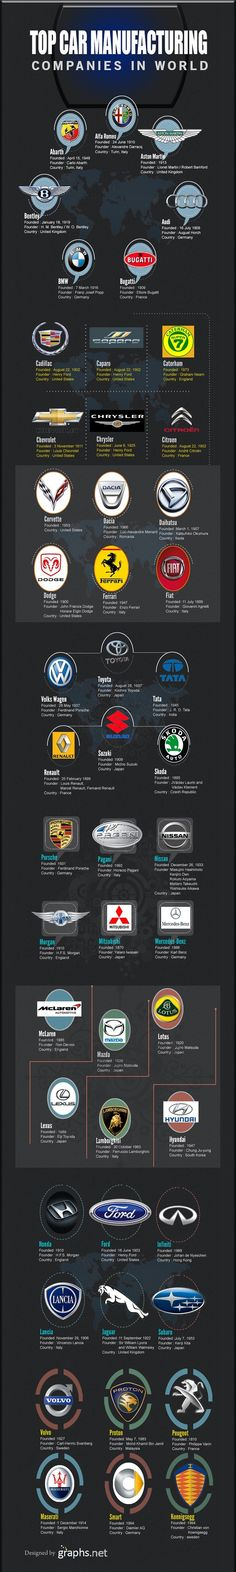 top car manufacturing companies in the world - infographic